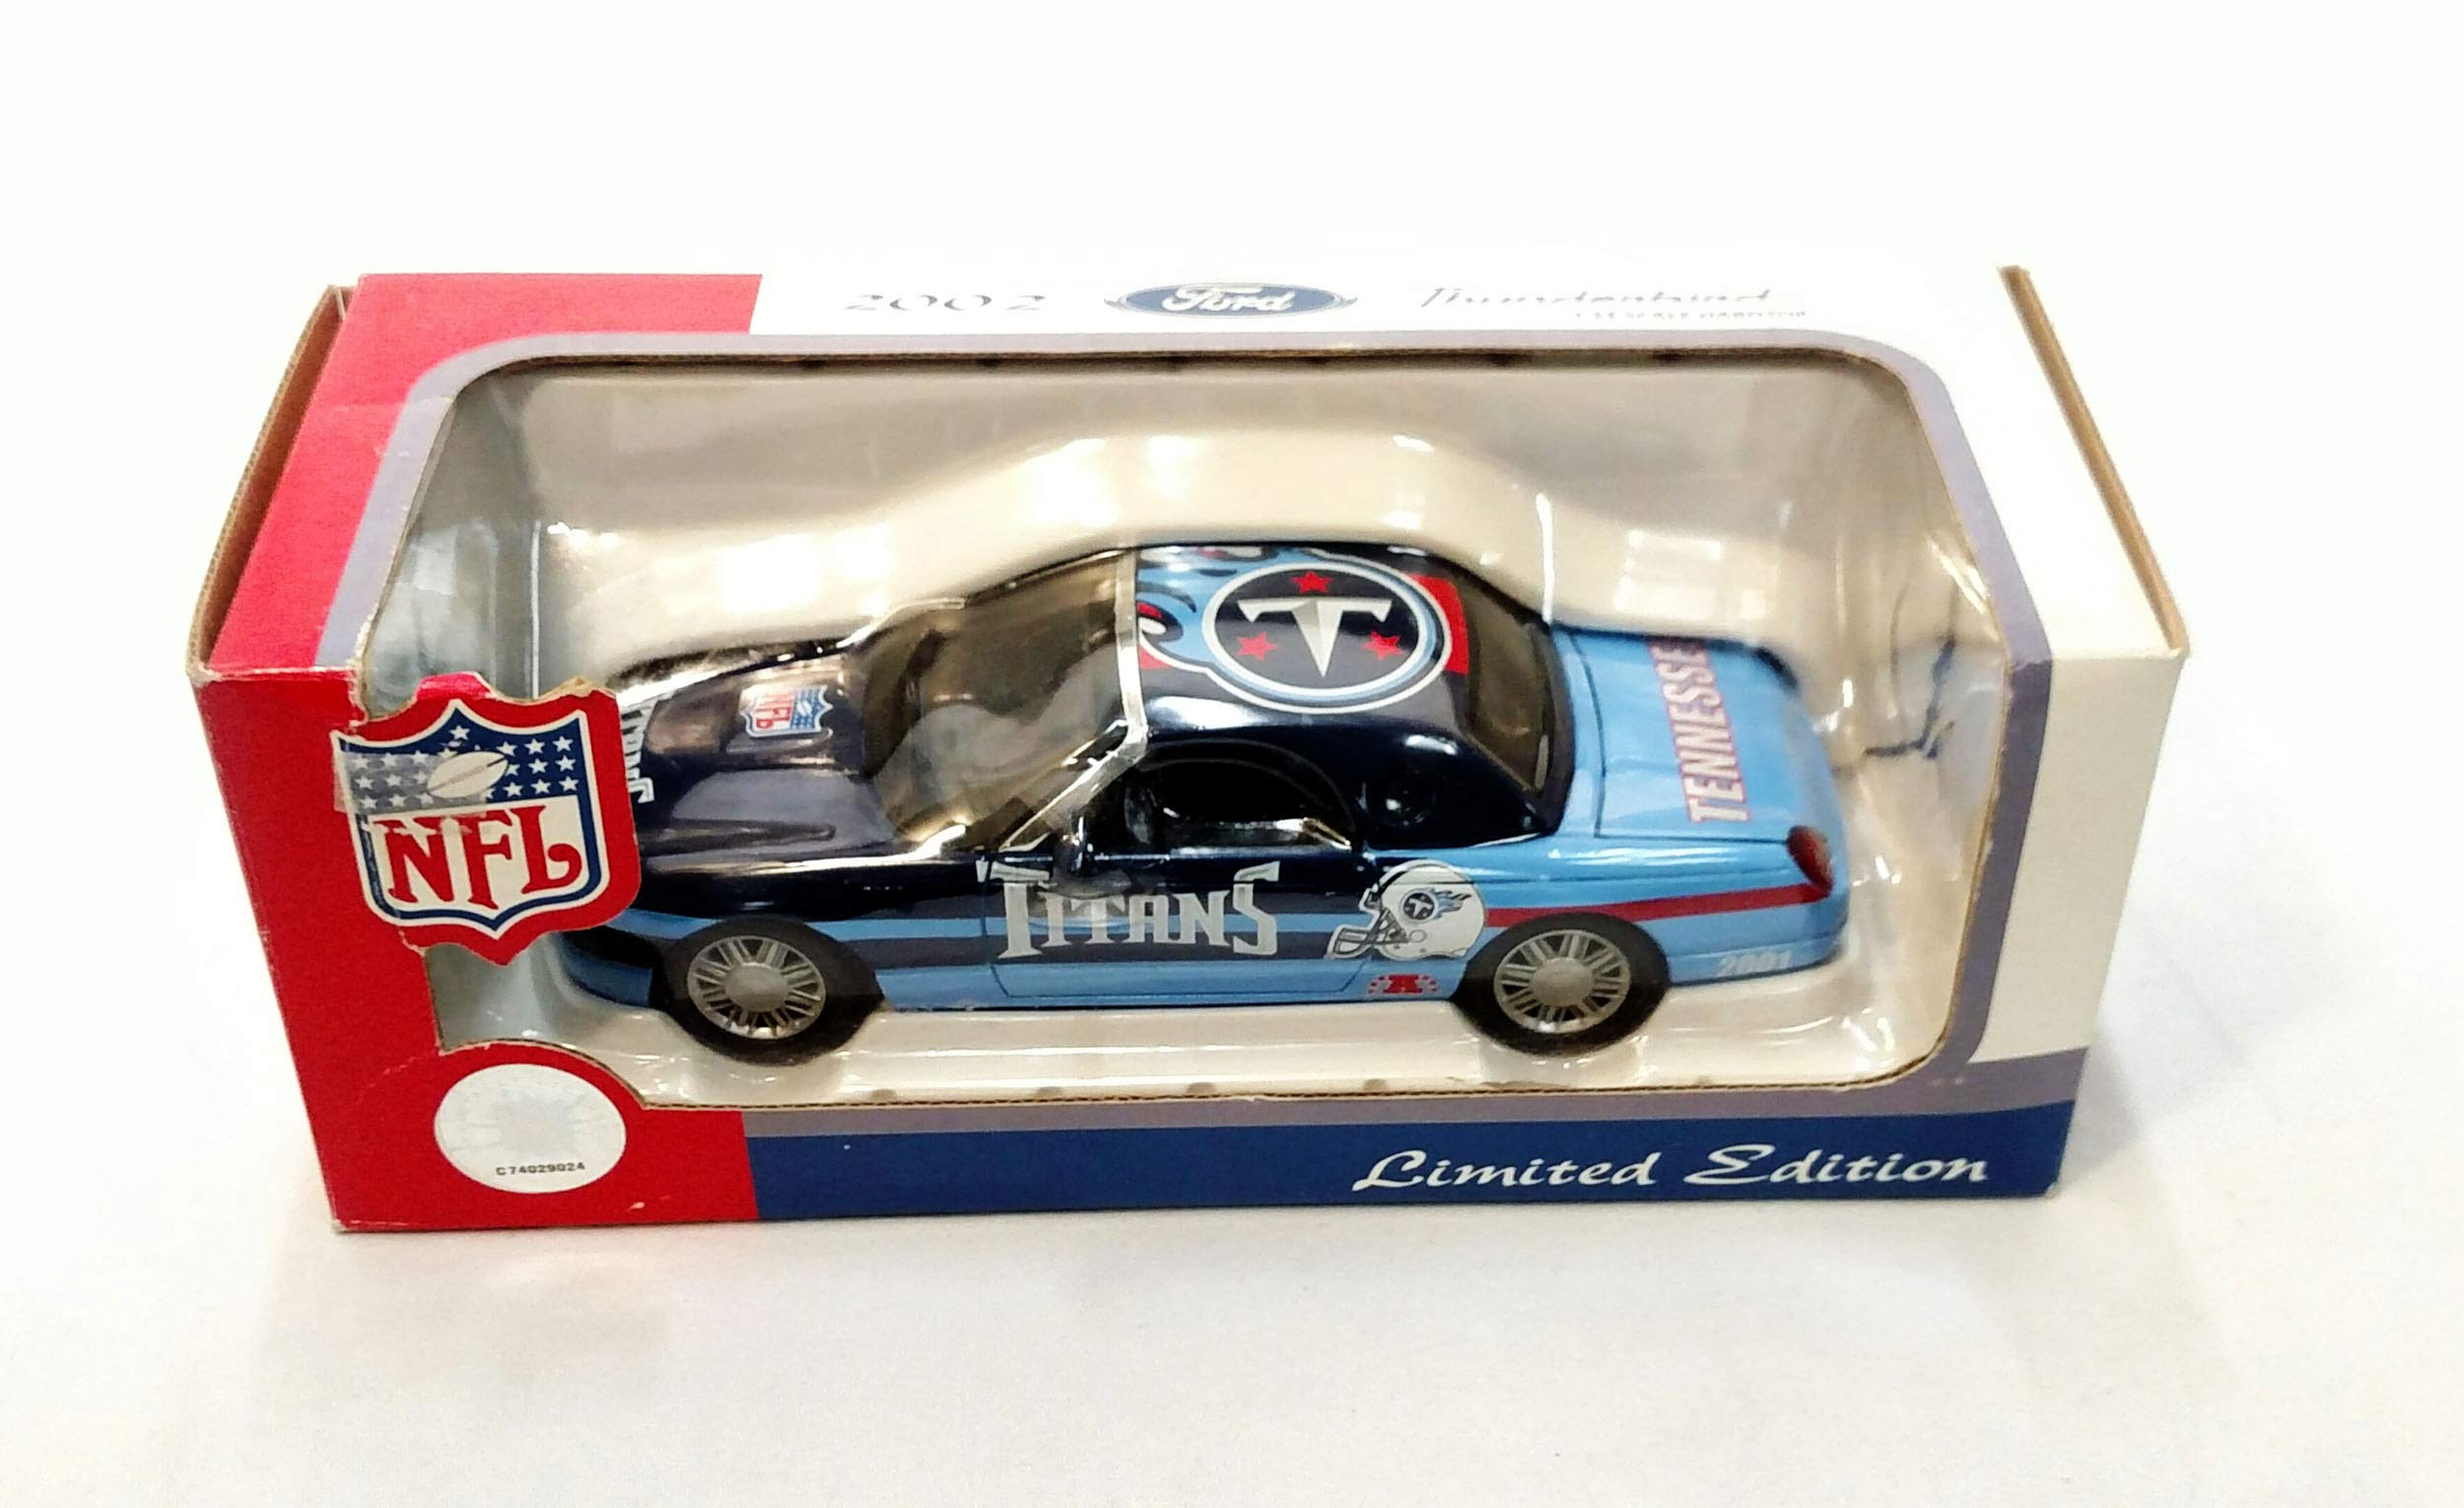 Tennessee Titans 2002 Ford Thunderbird Limited Edition Die Cast Collectible